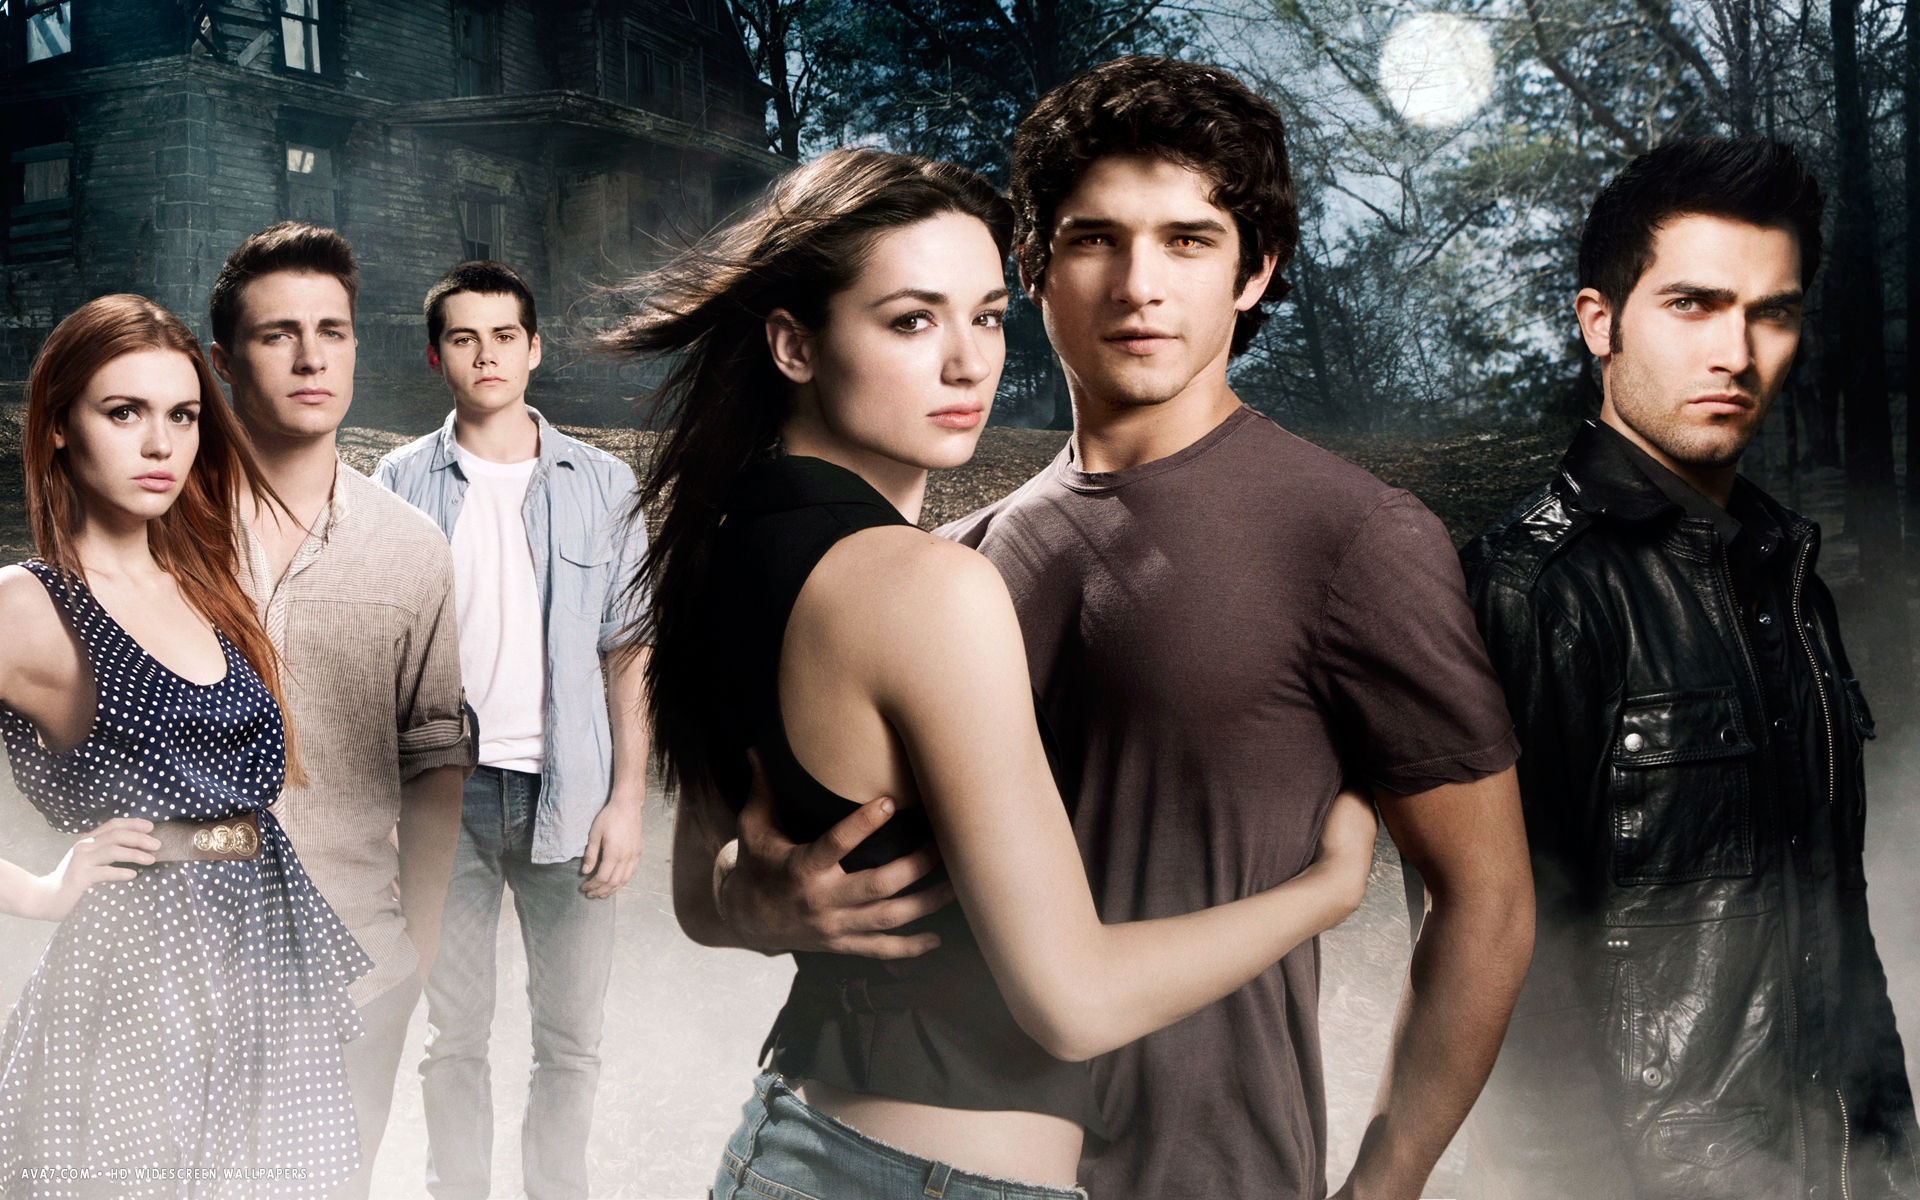 teen wolf tv series show hd widescreen wallpaper